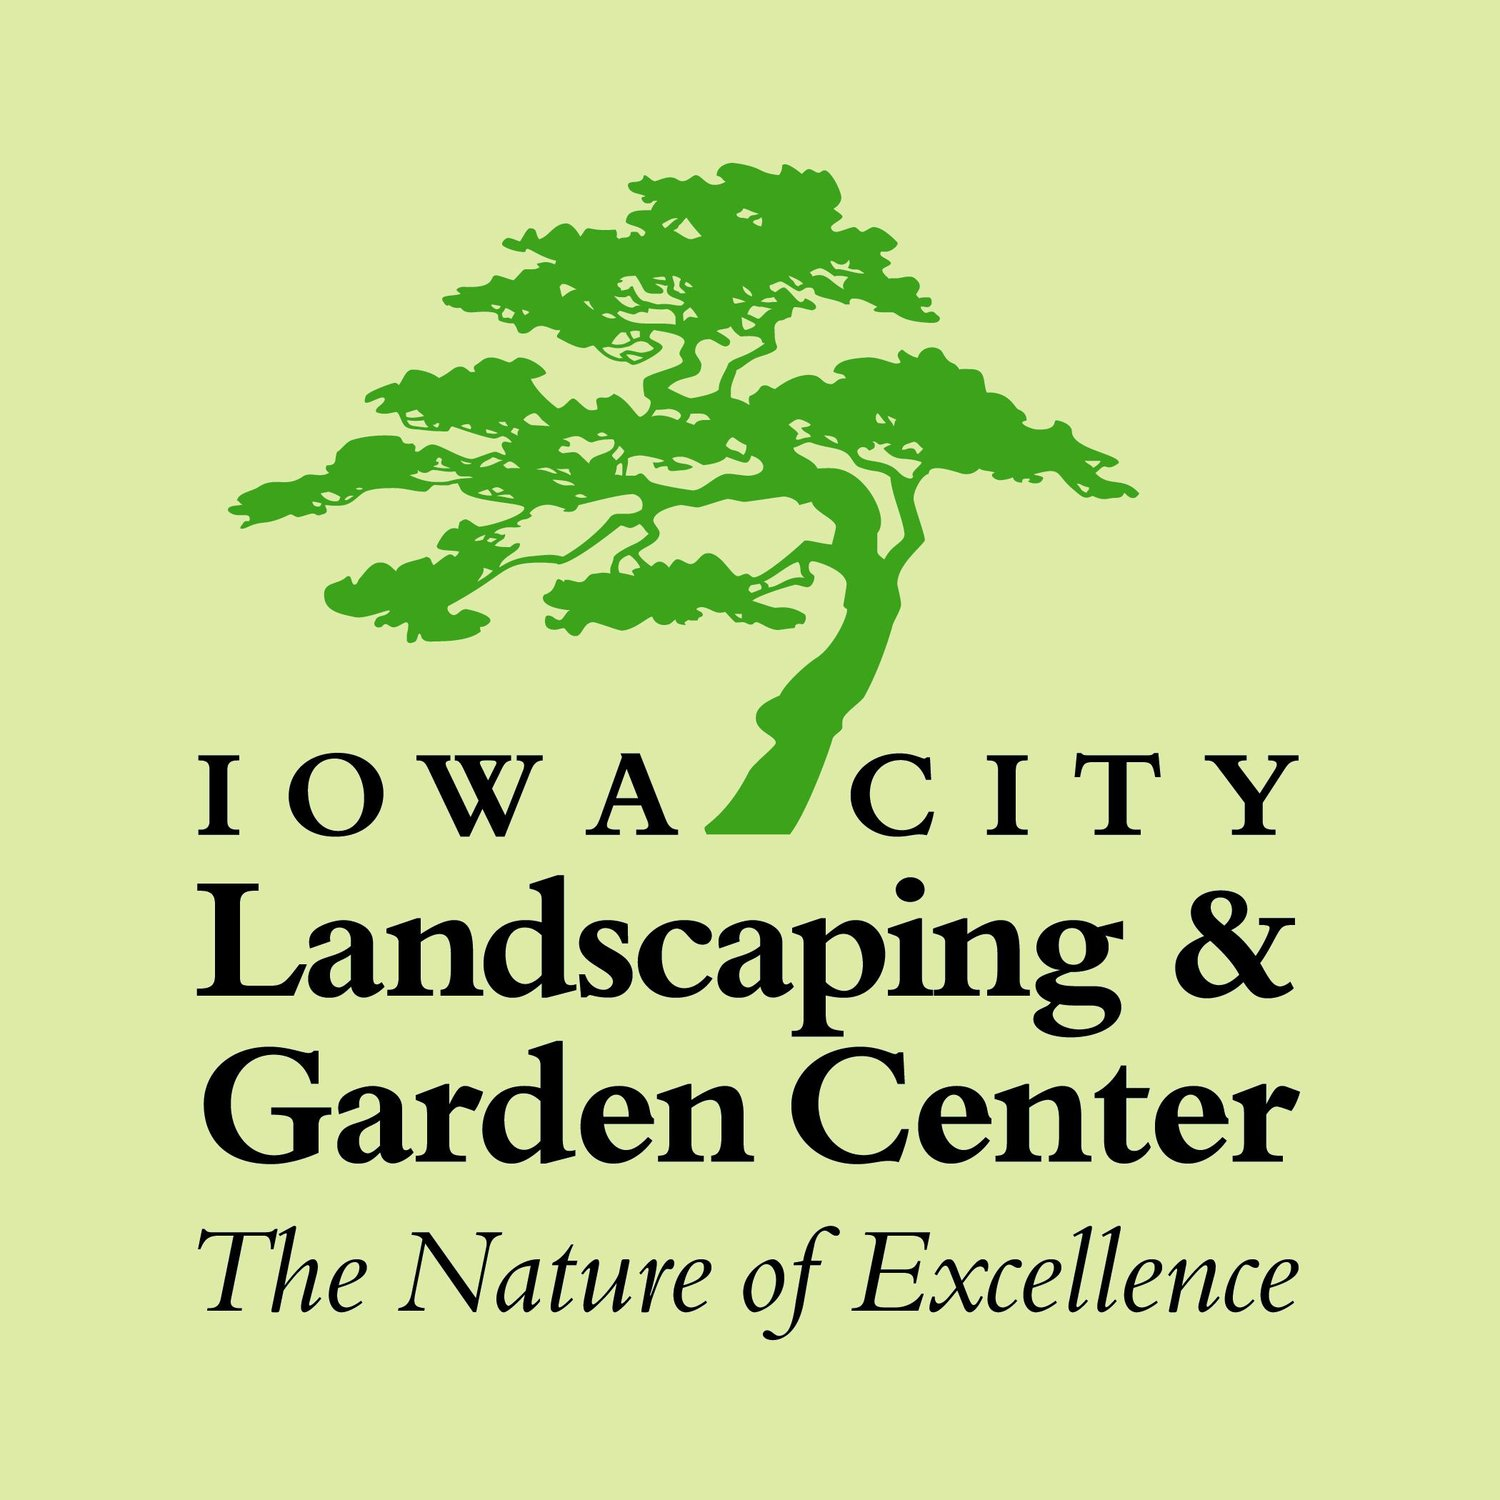 Iowa City Landscaping